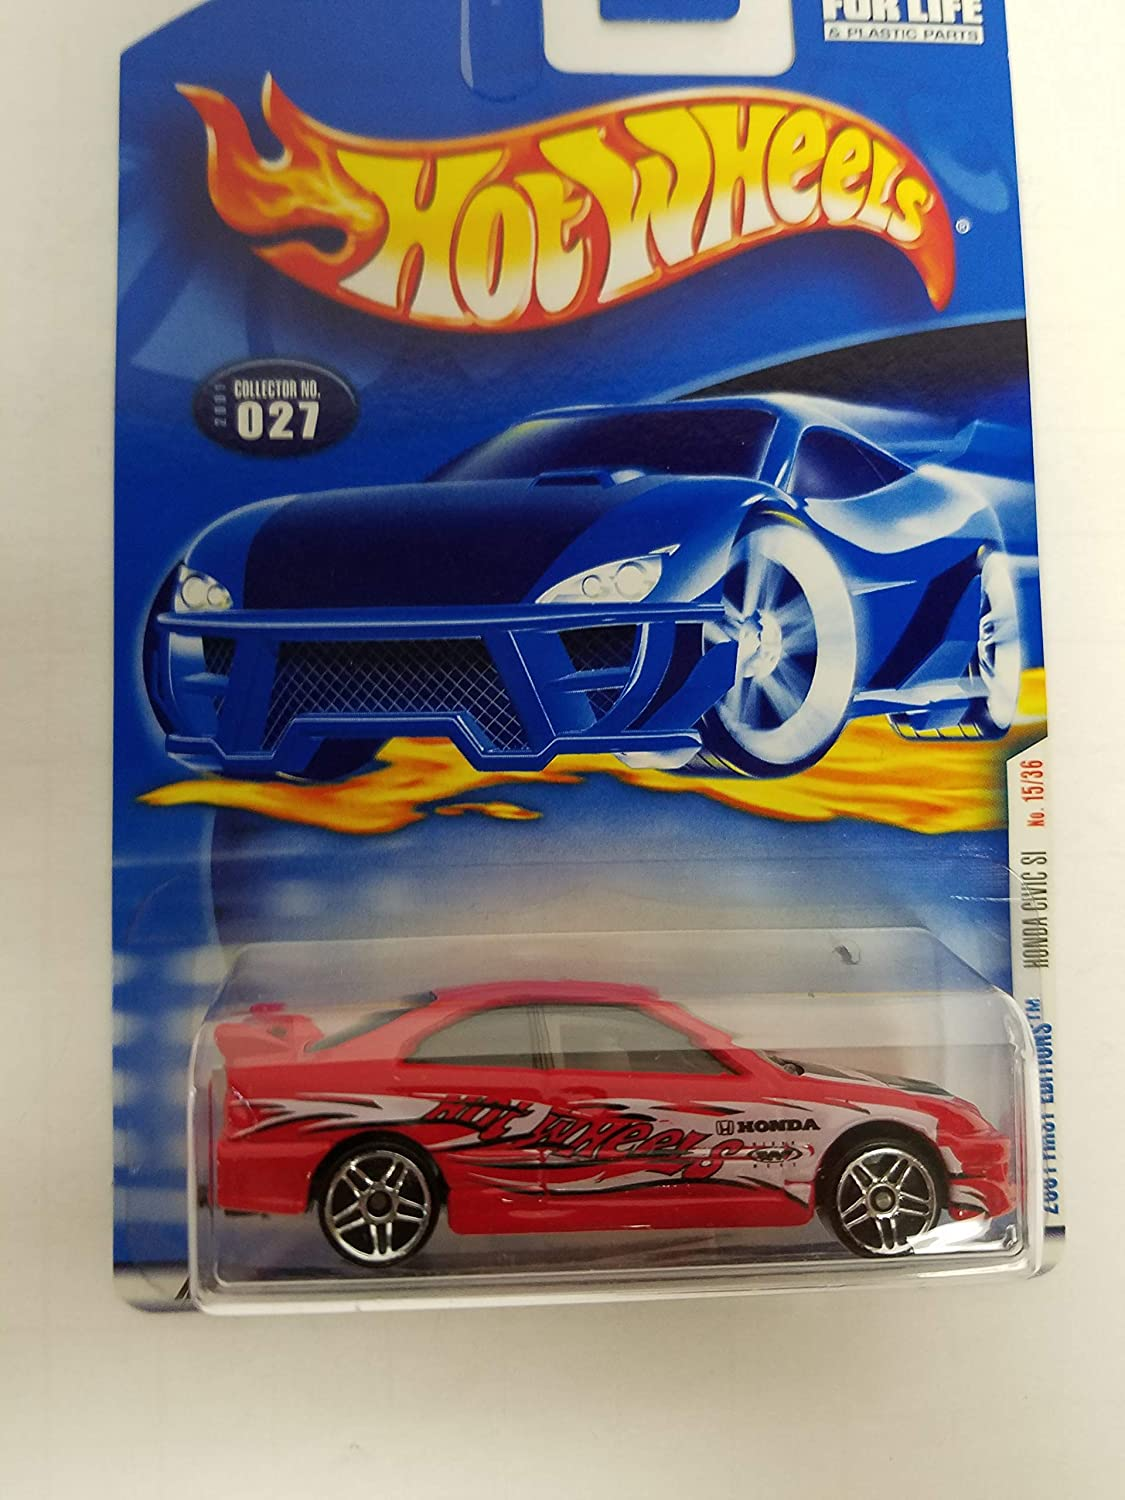 Honda Civic SI Hot Wheels 2001 First Editions diecast 1/64 scale car No. 027